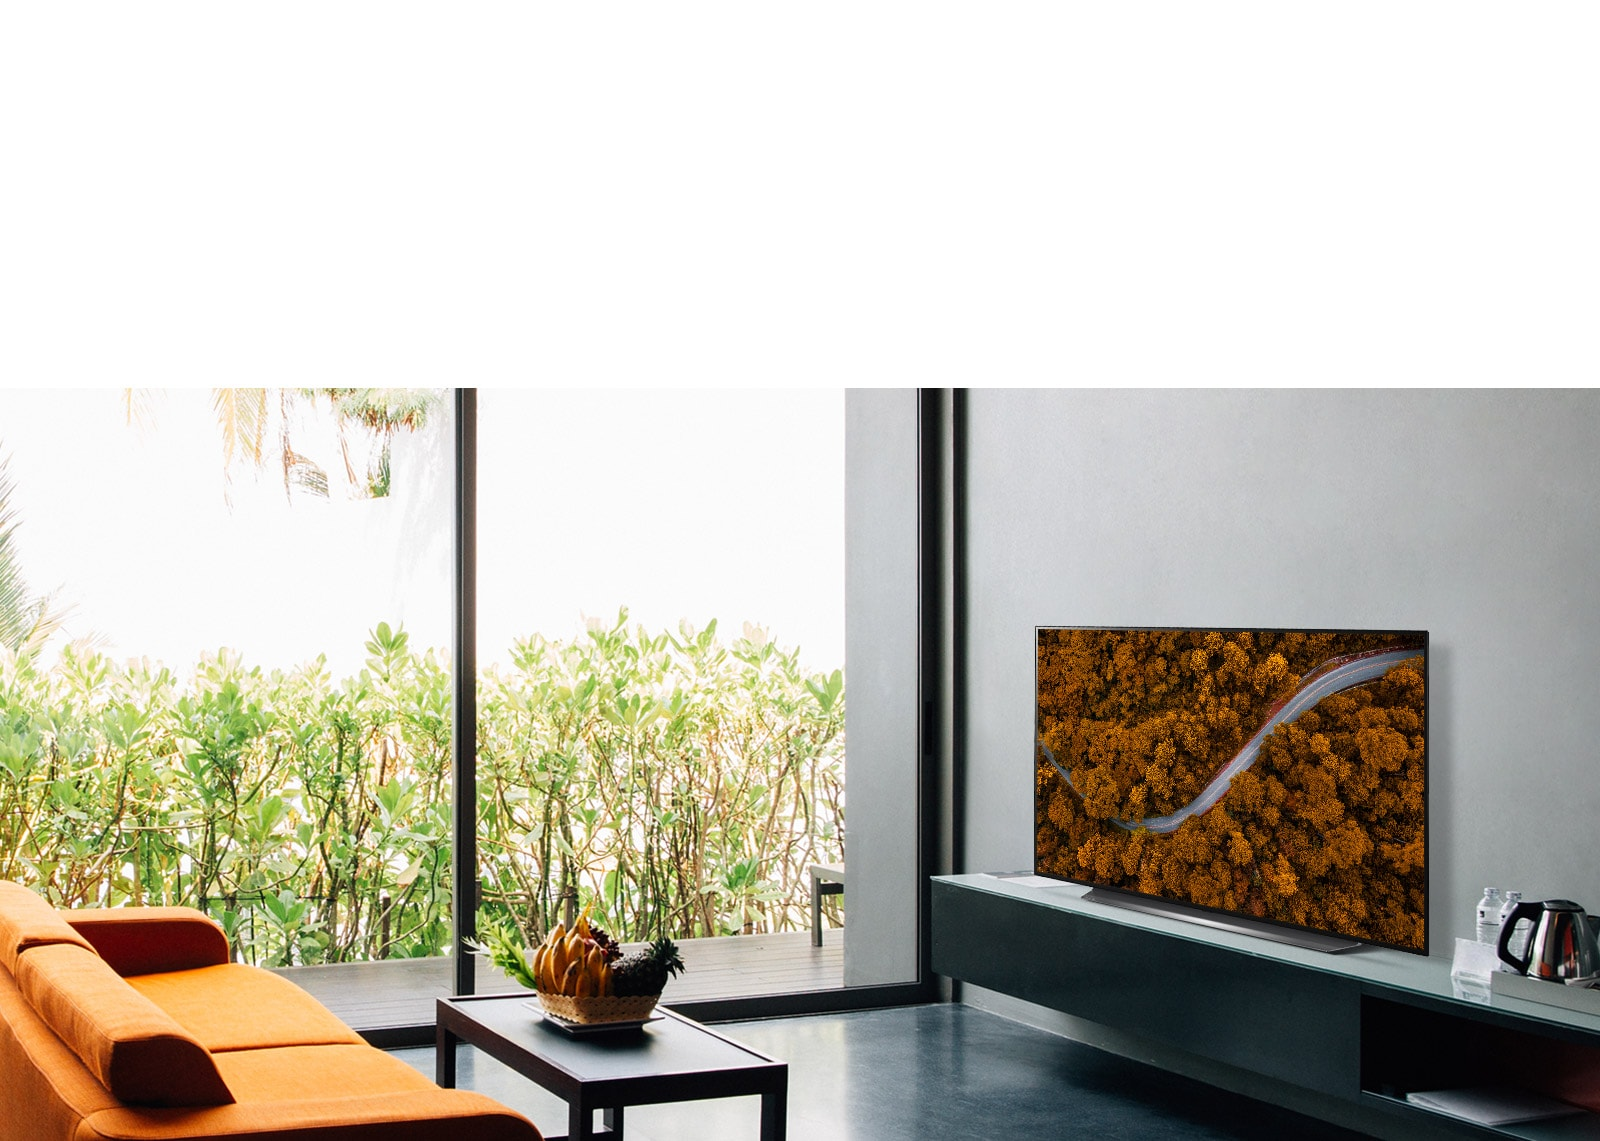 Living room with a sofa and a TV showing an aerial view of nature